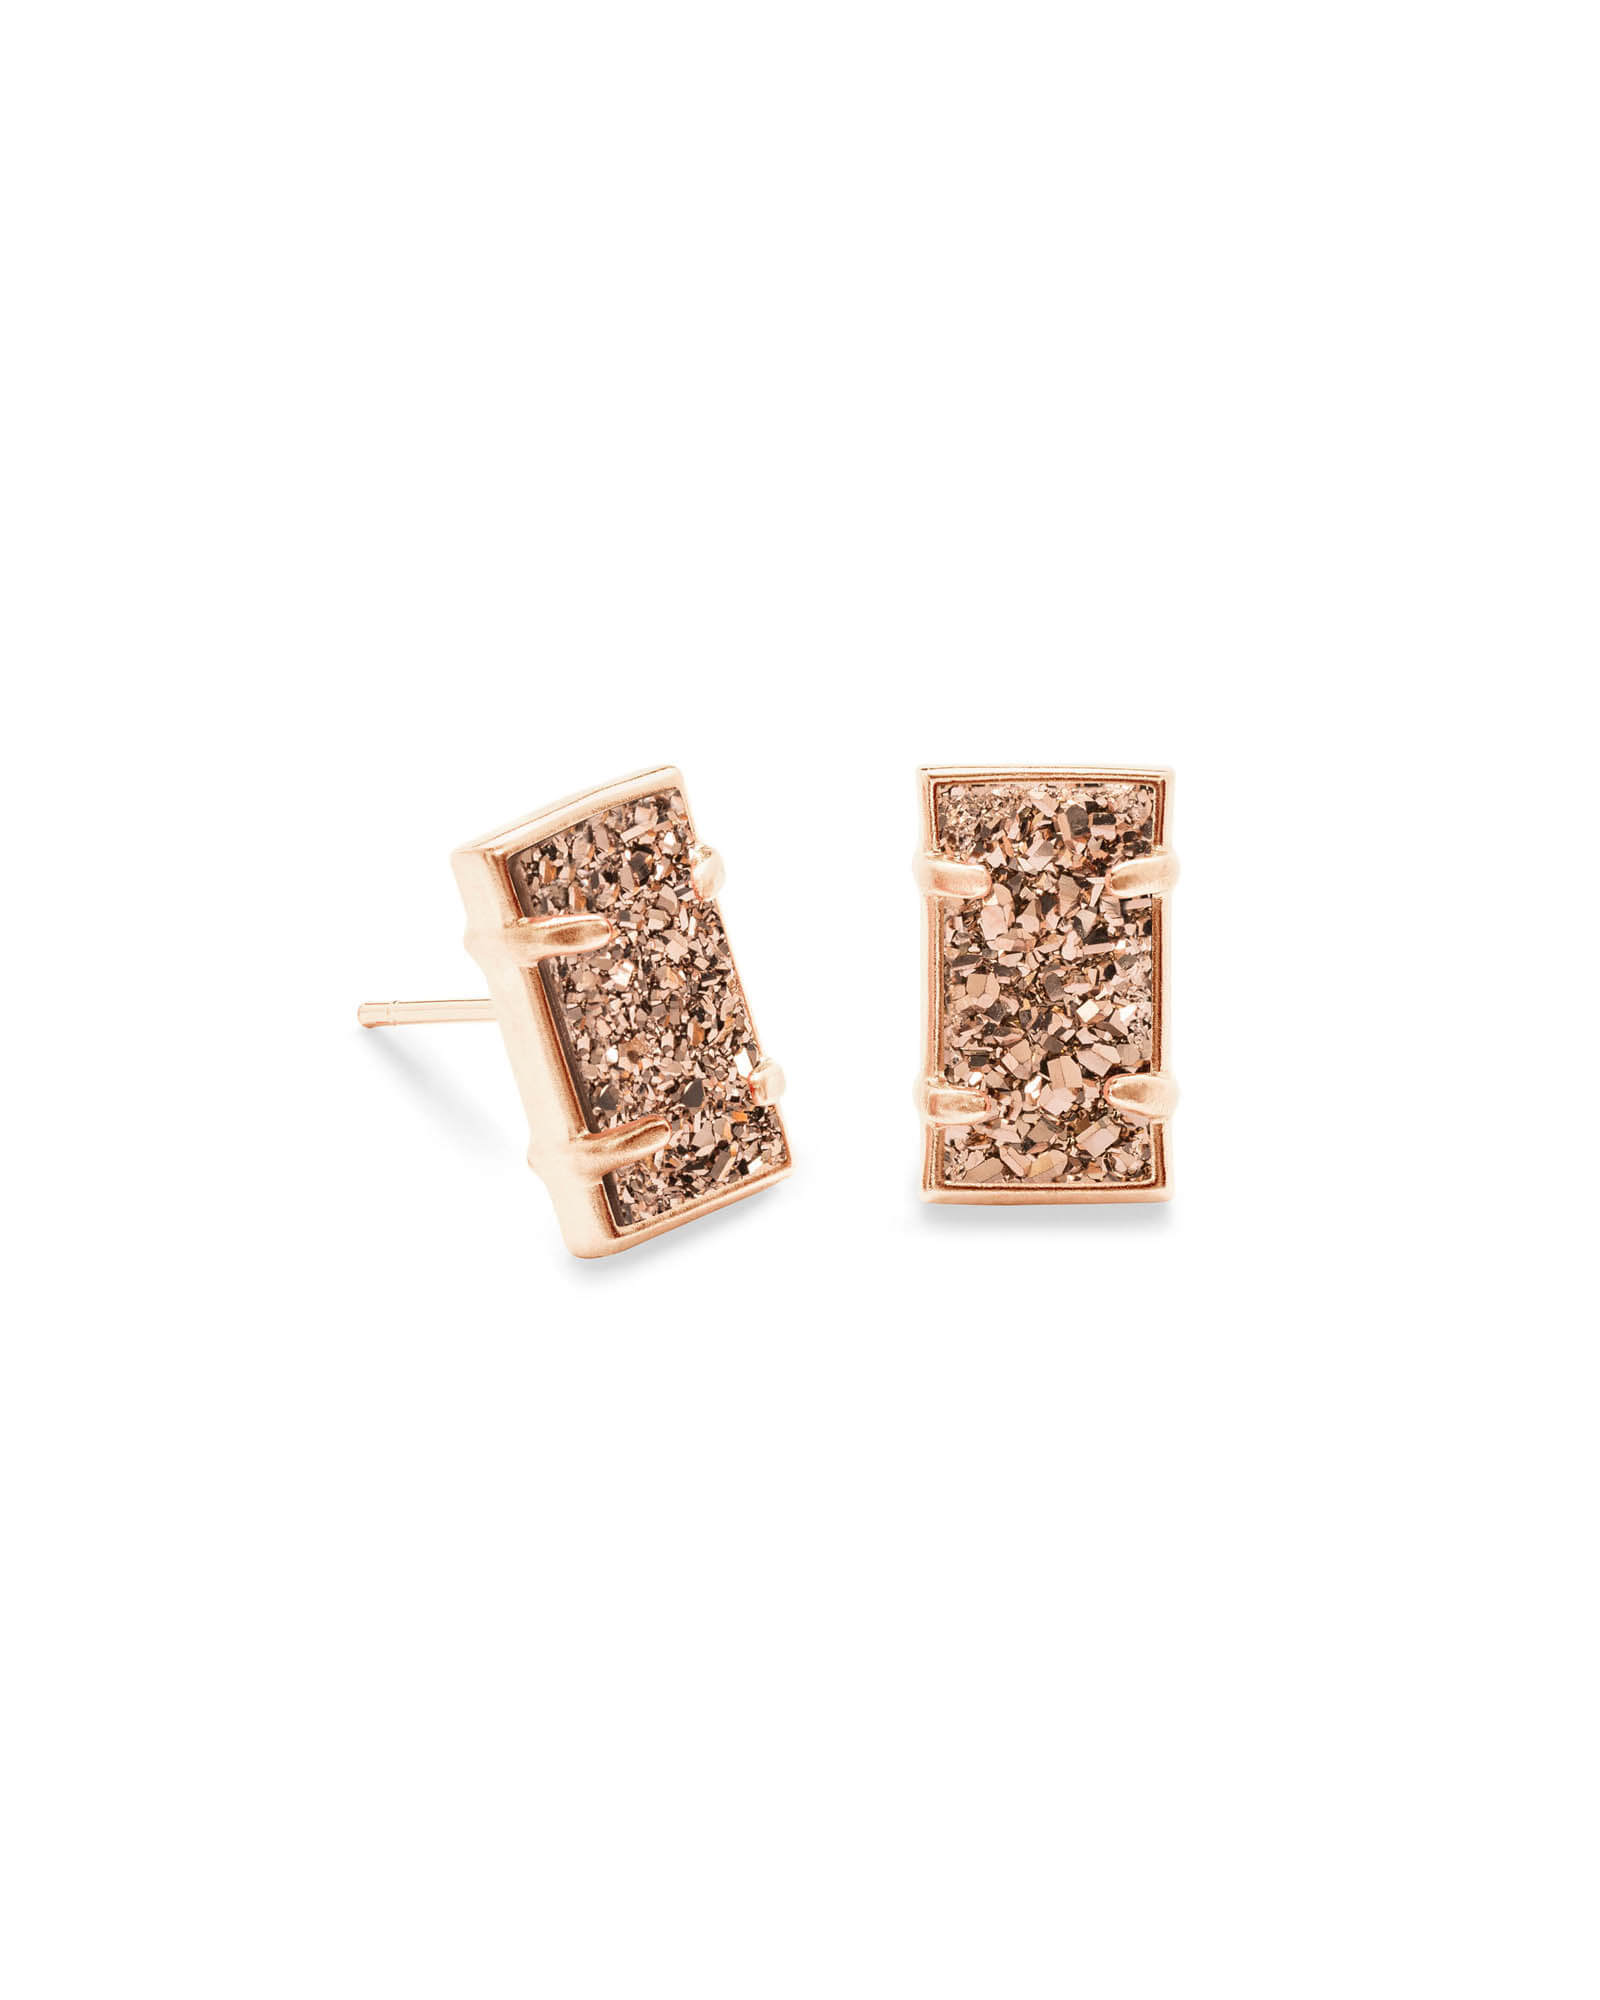 Paola Rose Gold Stud Earrings in Rose Gold Drusy